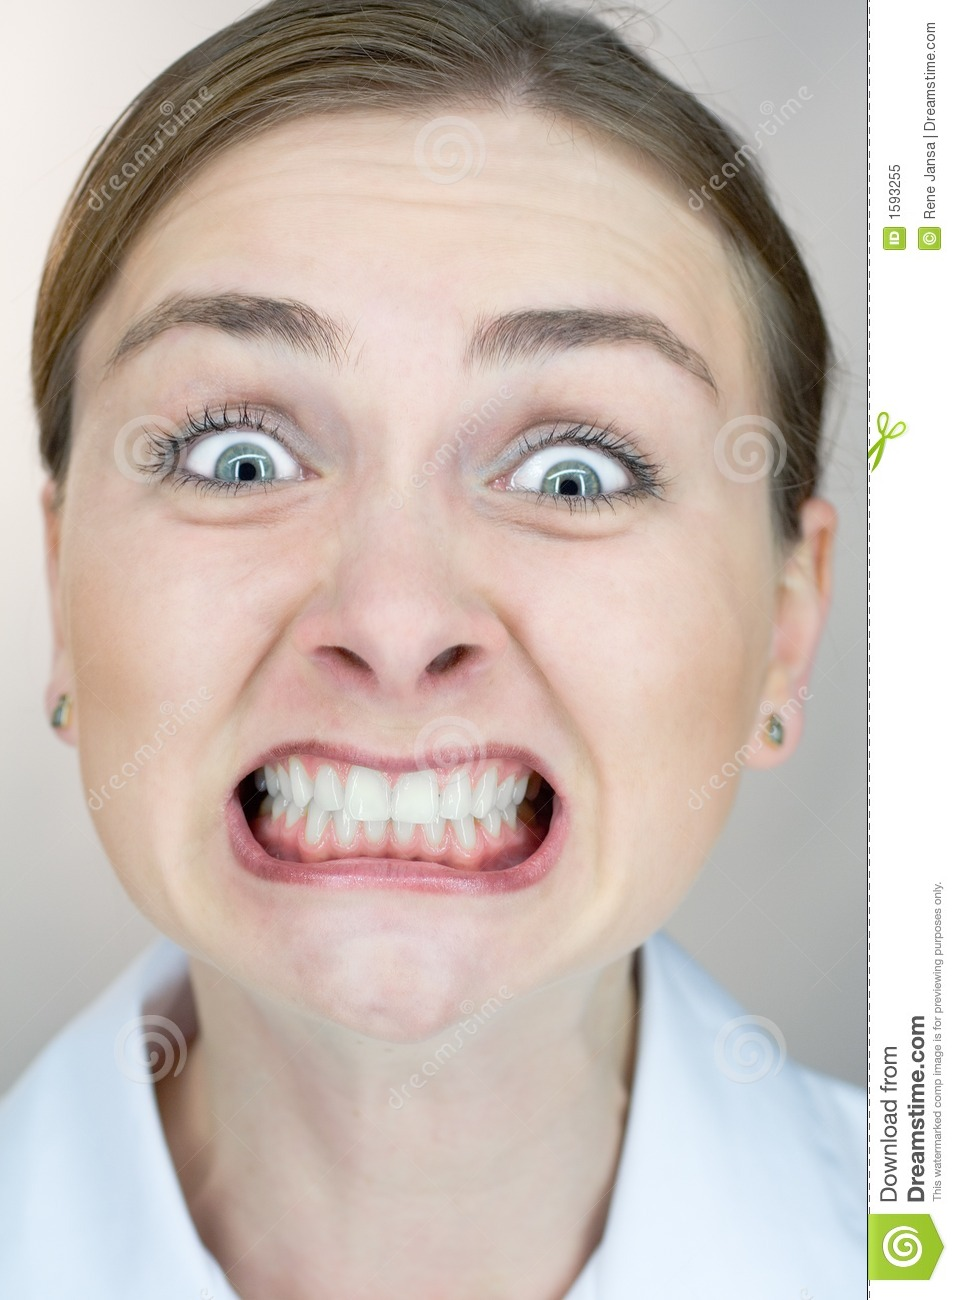 Uptight Expression Closeup Royalty Free Stock Photo ...